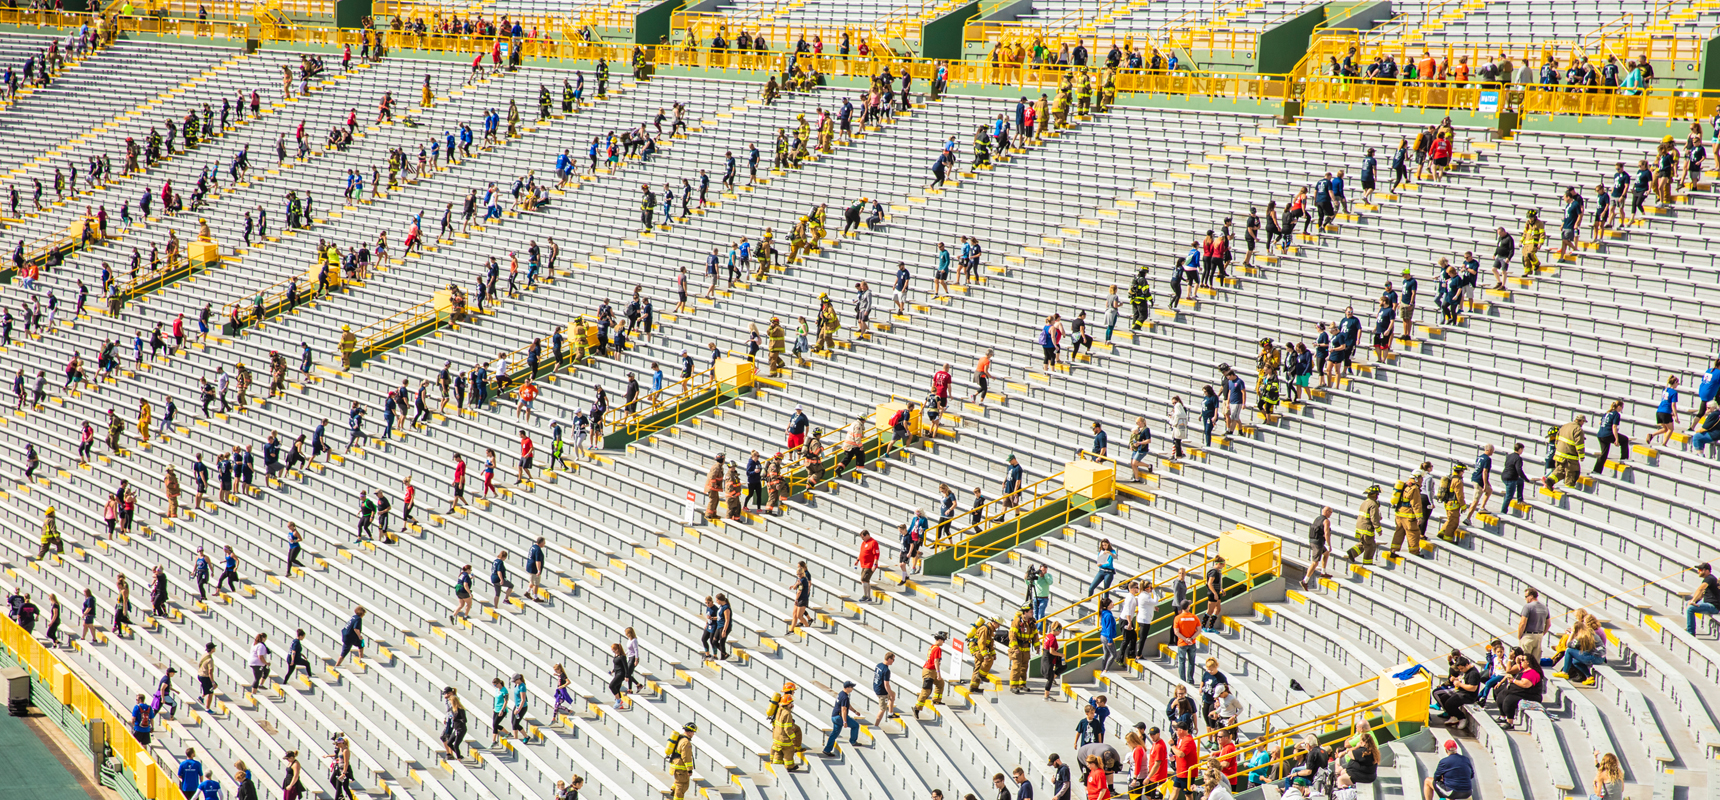 Over 2,200 participants climbed the steps of Lambeau Field for the 9/11 Memorial Stair Climb on September 7, 2019